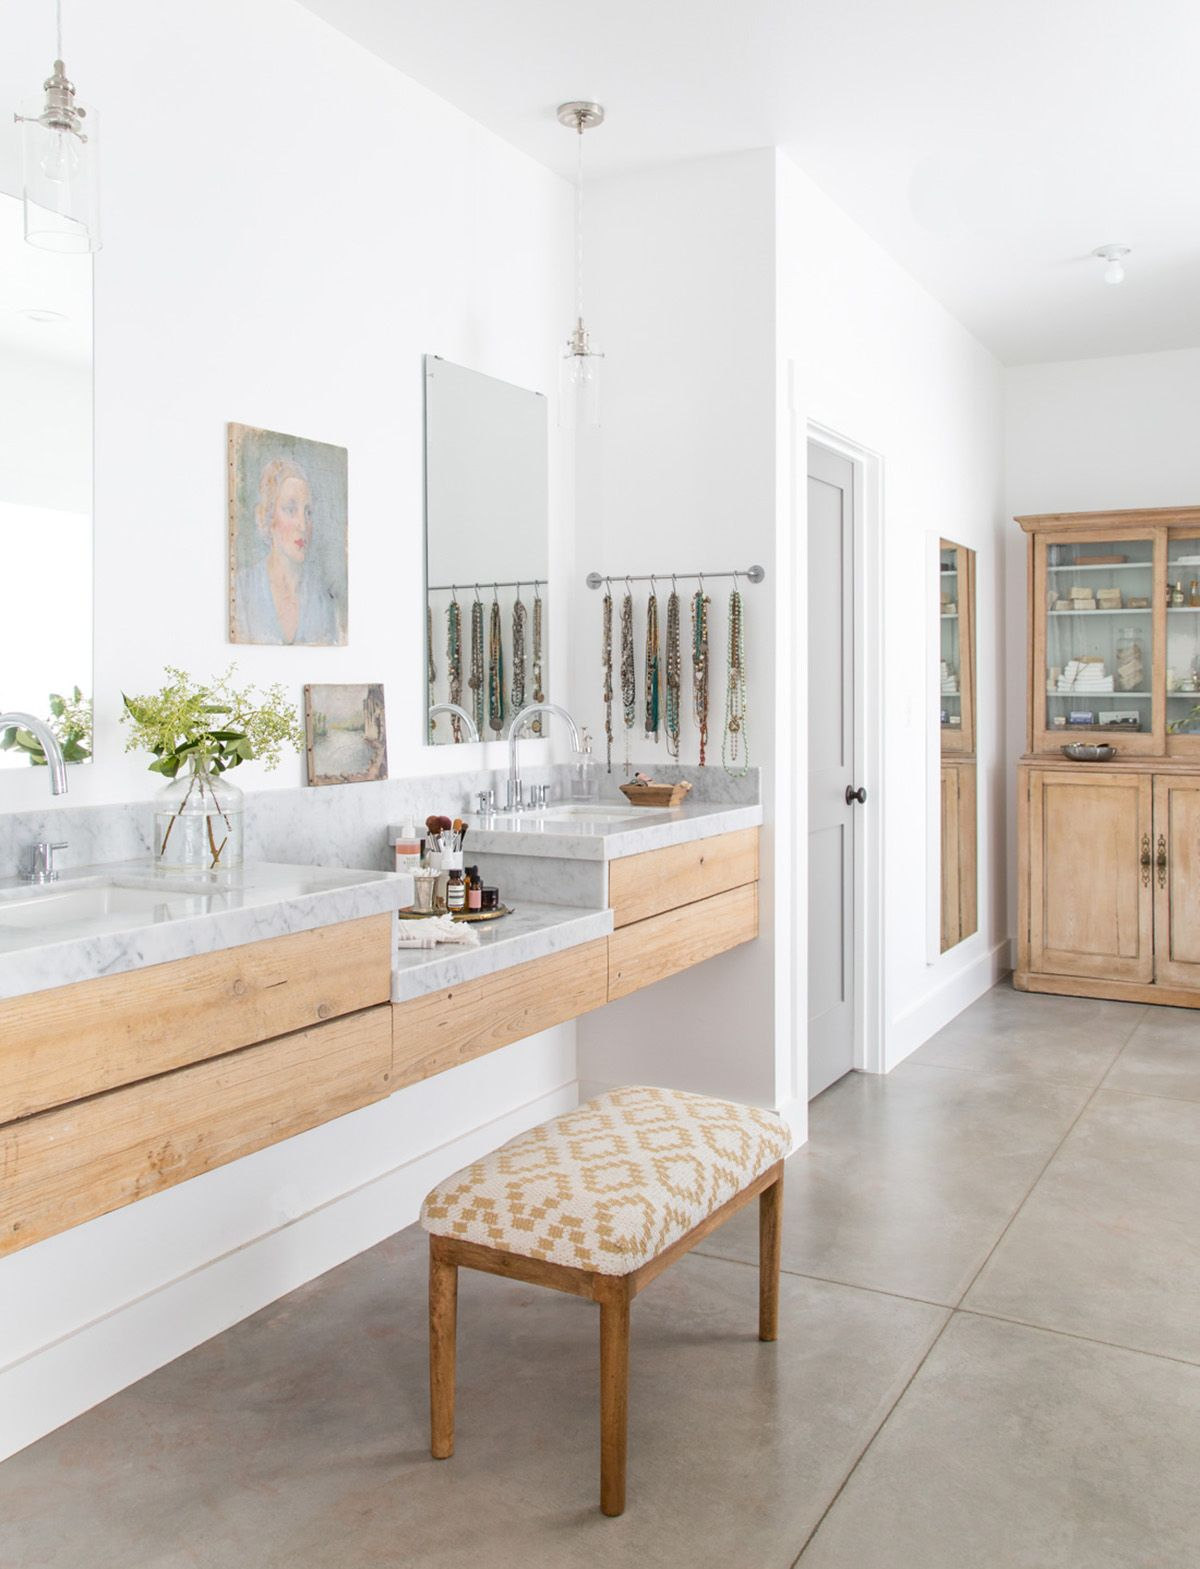 This Old But Updated Trend Brings Quiet Luxury Back to Your Bathroom ...